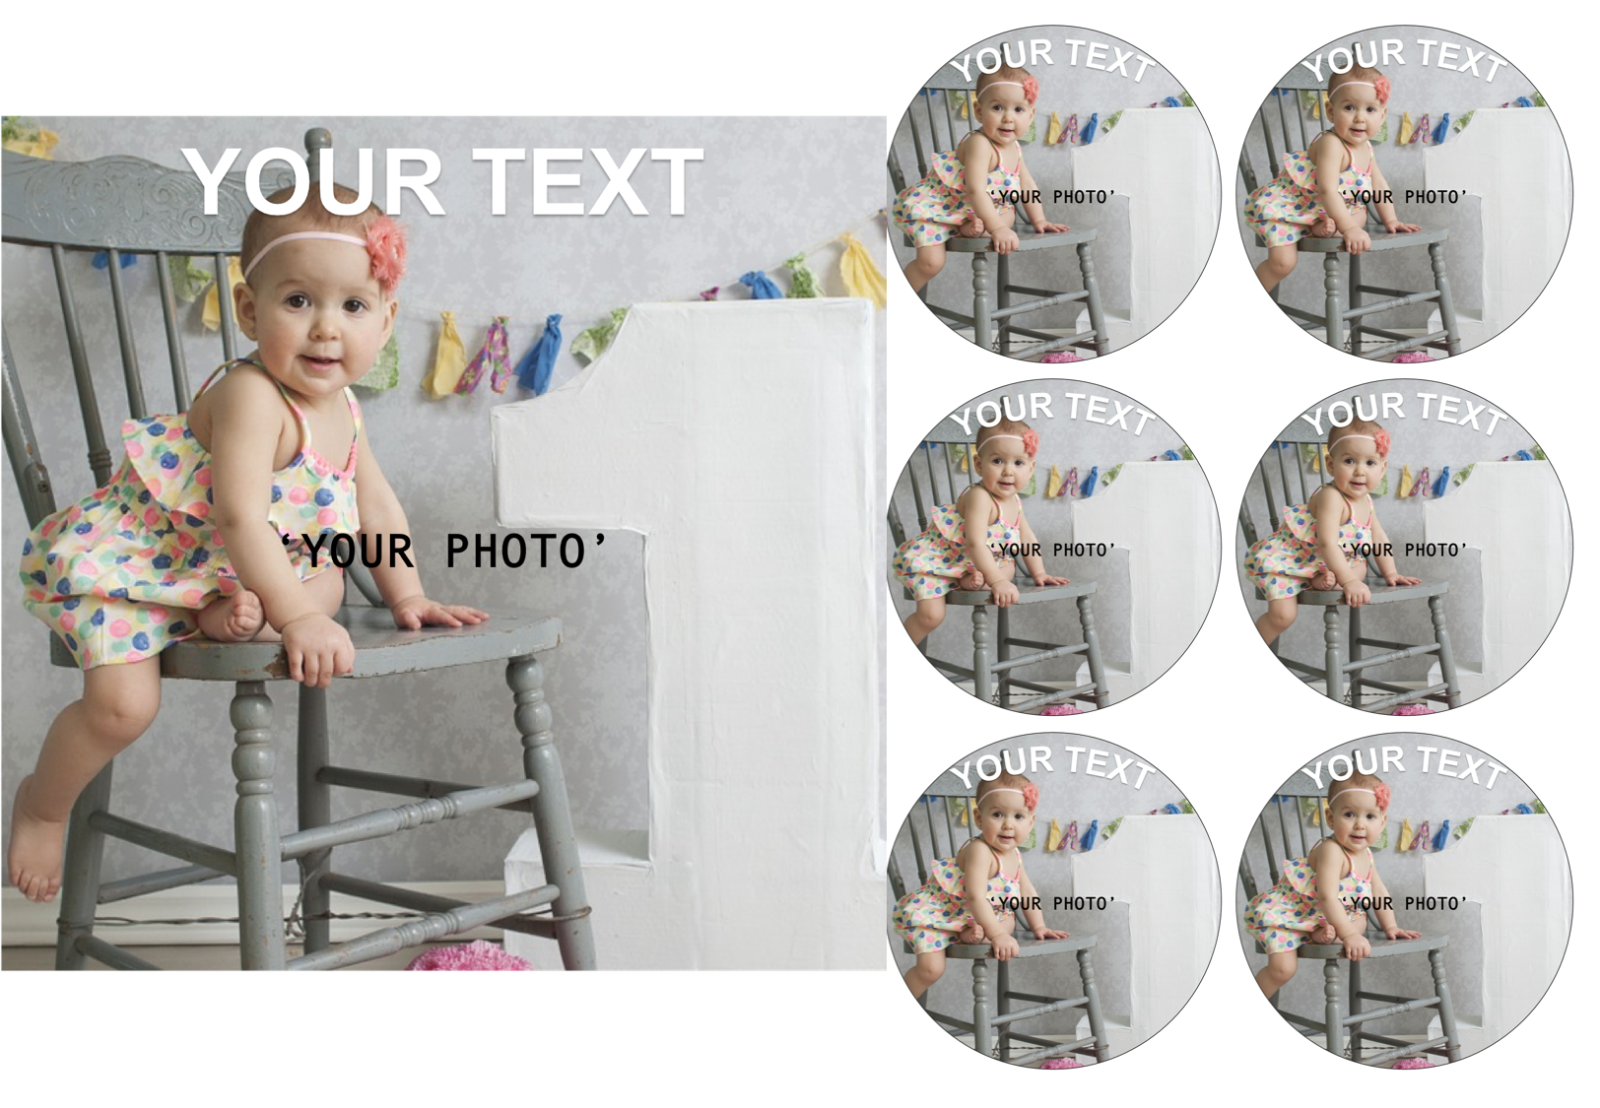 YOUR OWN EDIBLE PHOTO cake topper, personalised image, Quality ICING OR WAFER 5